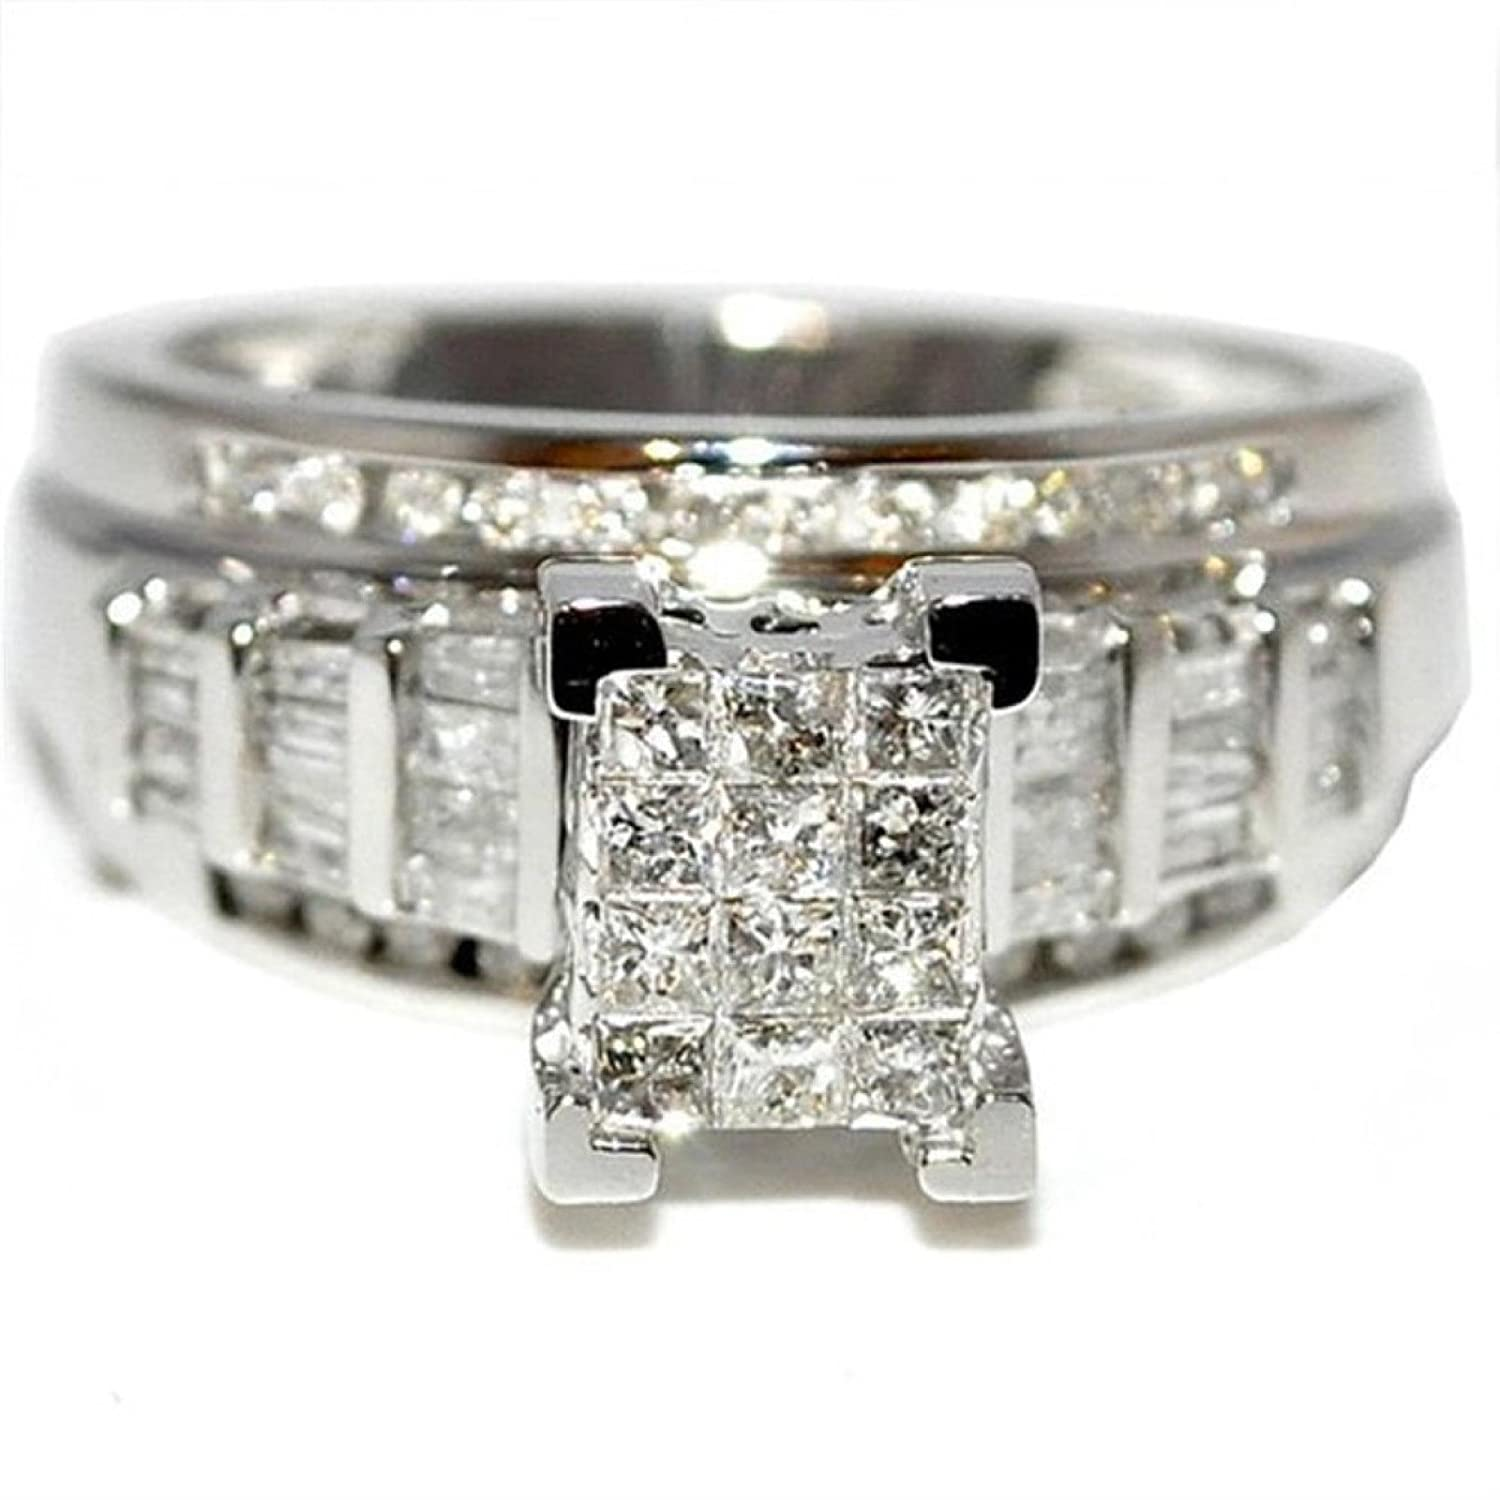 aiboulder rings brides unique wedding for diamond cut ring engagement gold white the princess com